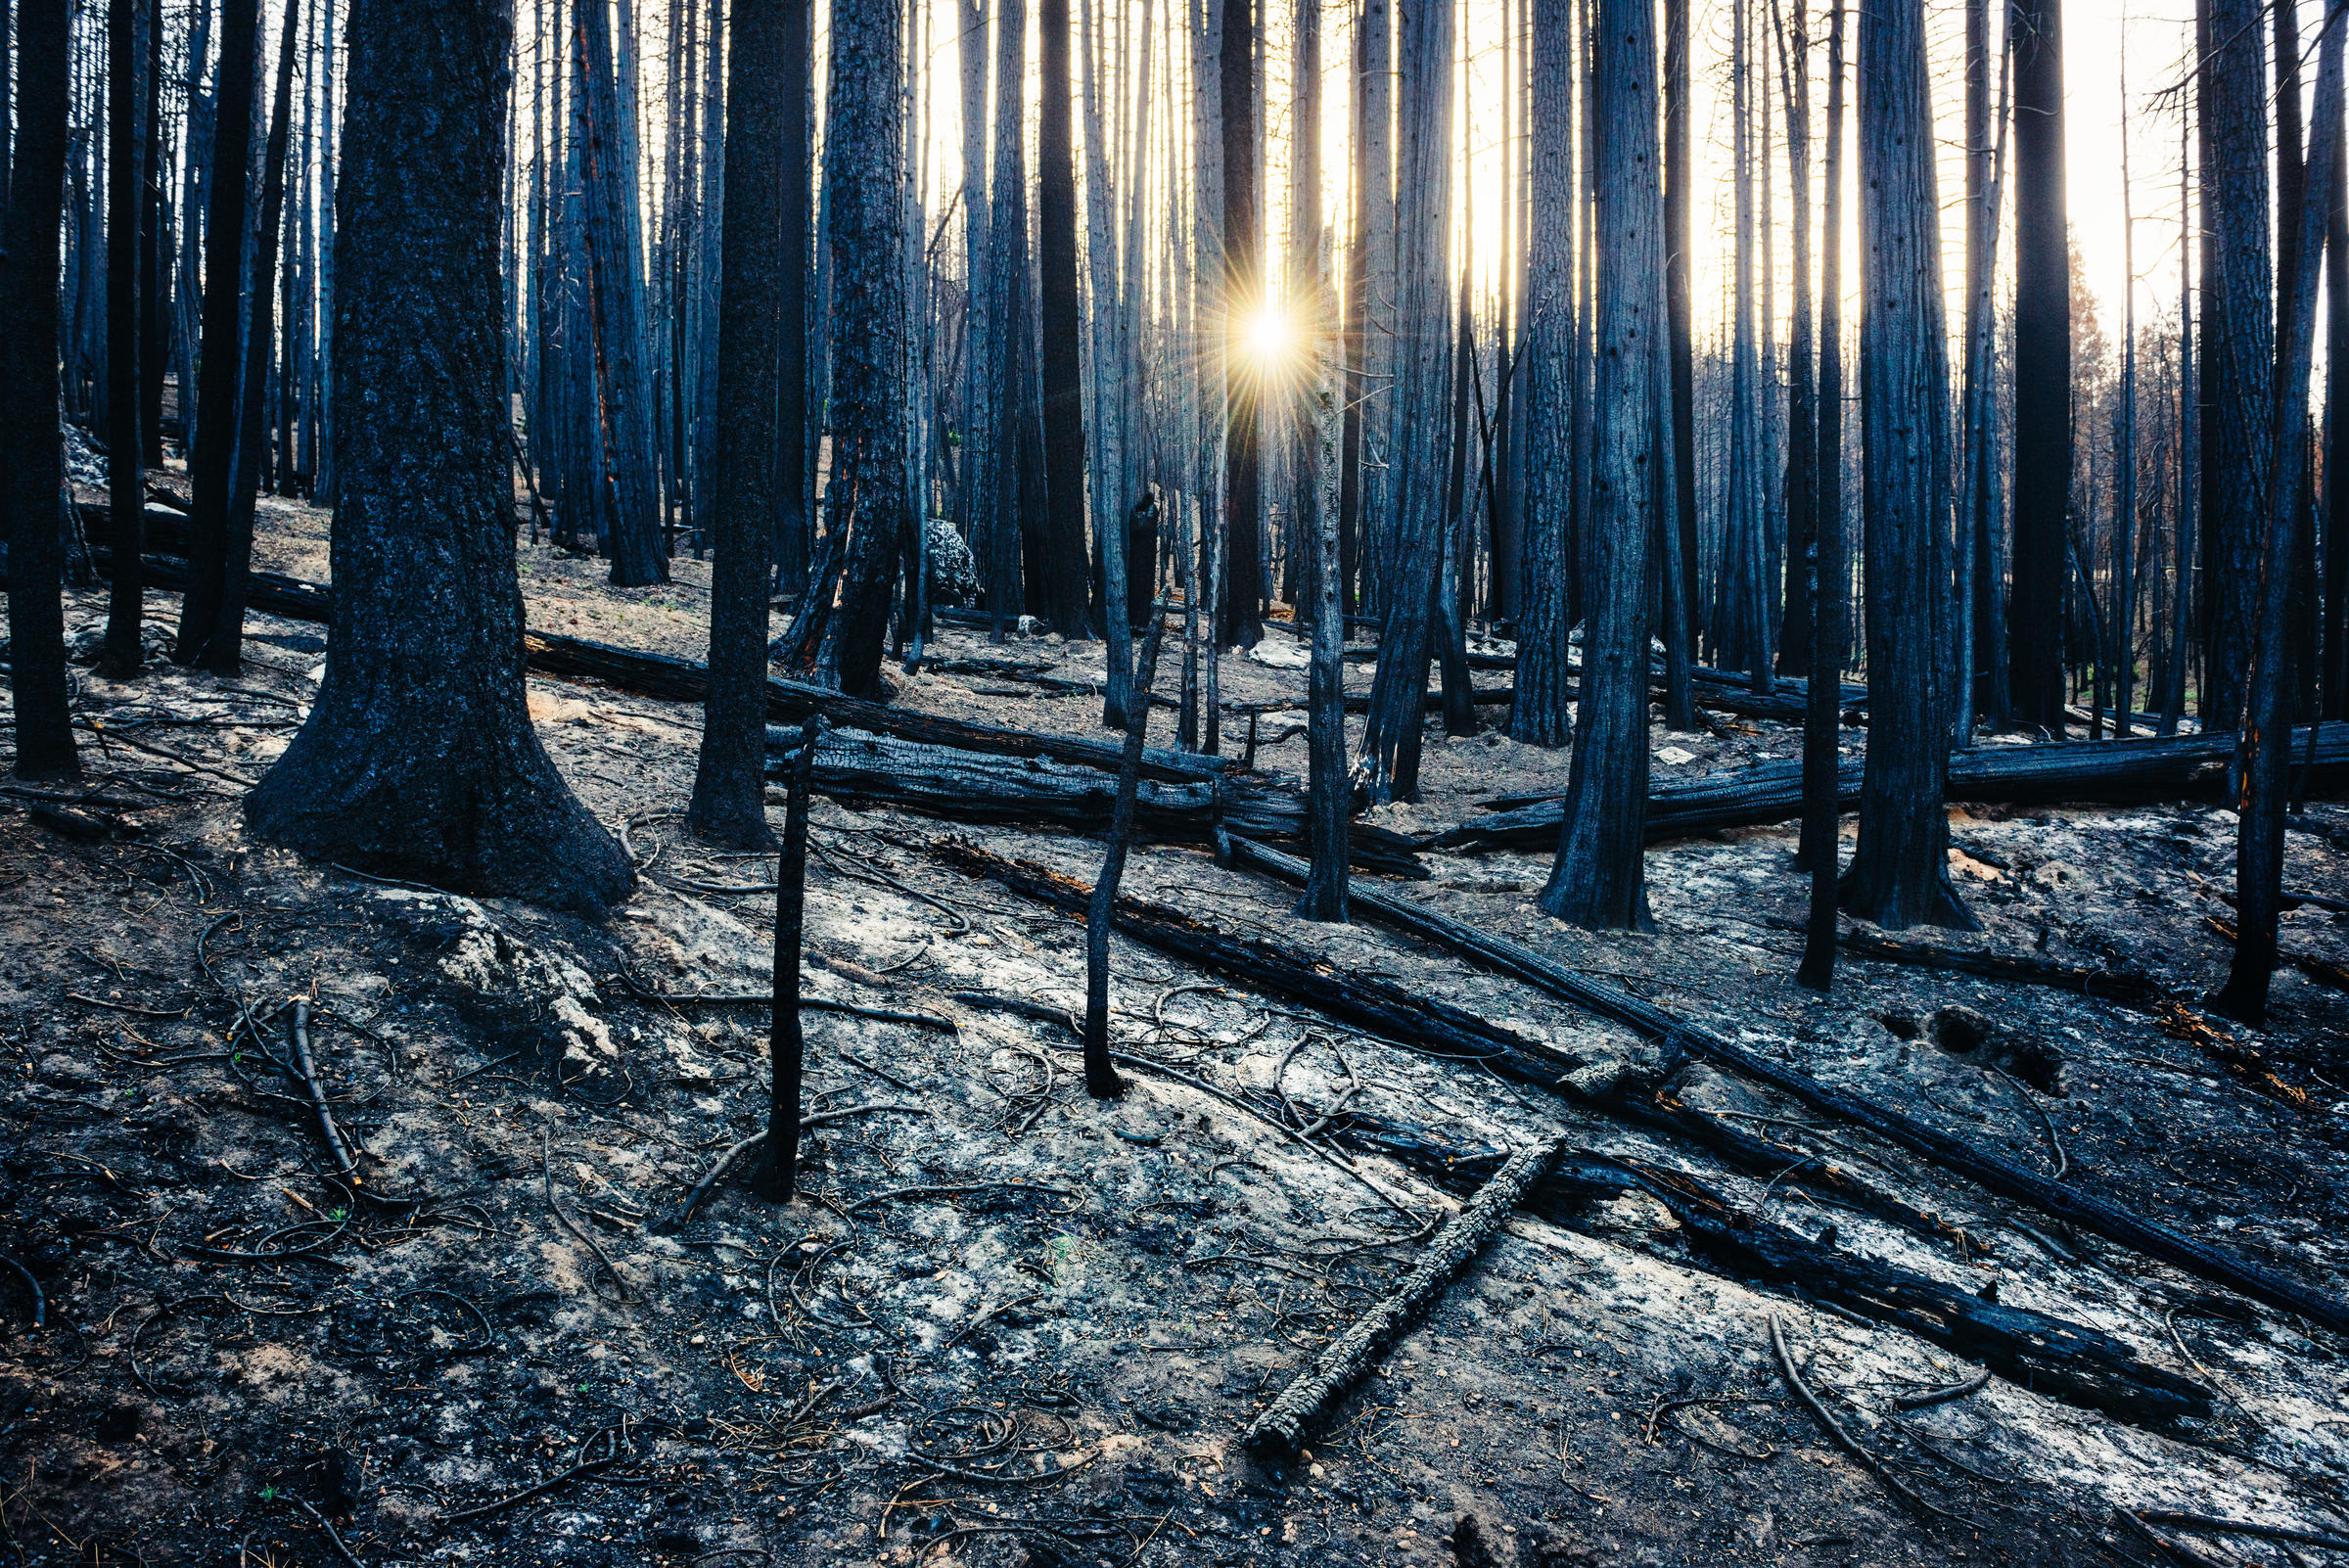 """This mixed conifer """"snag forest"""" rests in a desolate state. Not only was the above-ground vegetation affected by the fire, but the soil chemistry and seed stock can be changed and lost, too. Ken Etzel"""